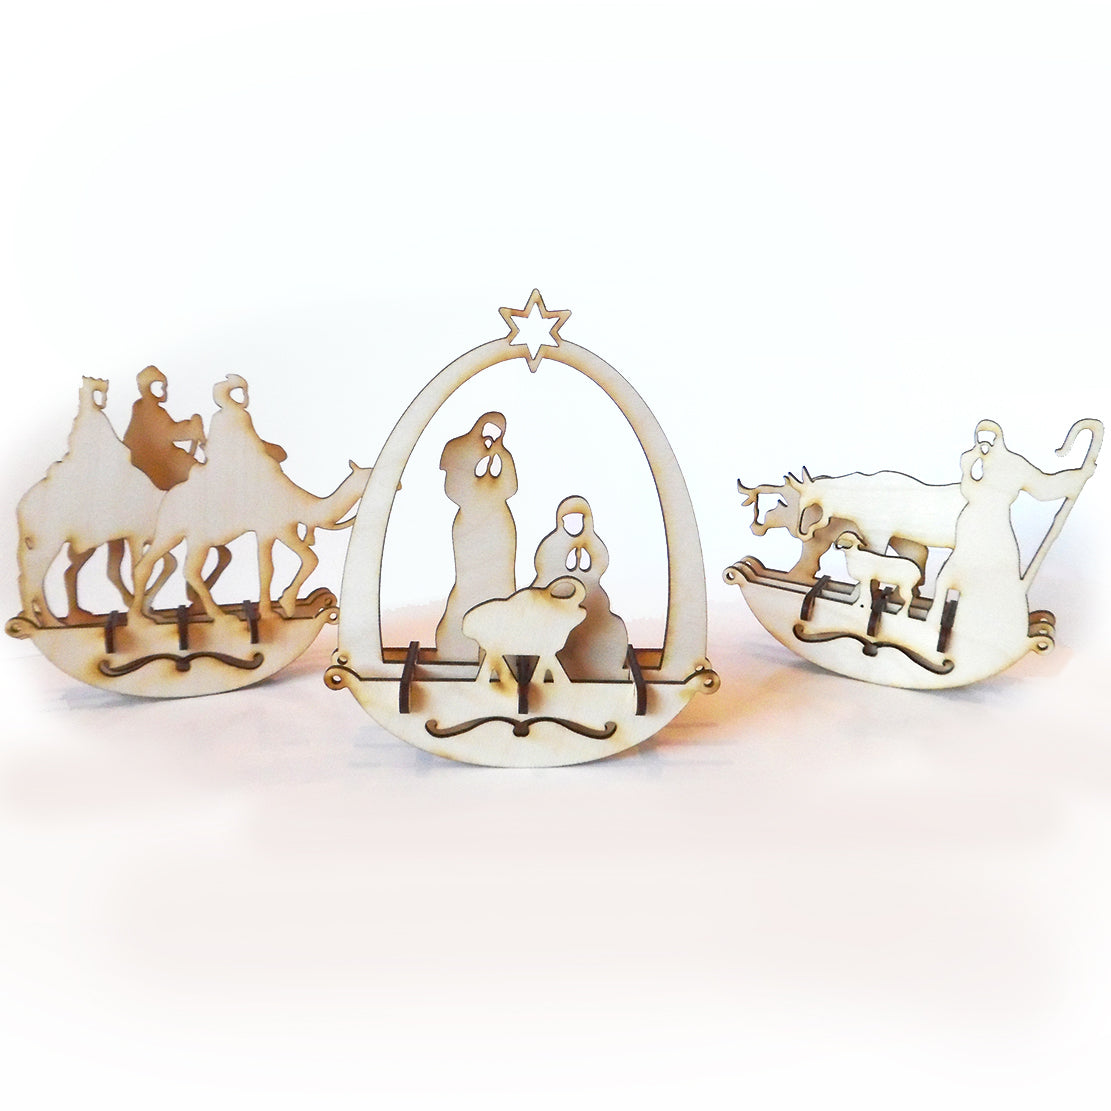 Wooden Christmas Nativity Rocker Set